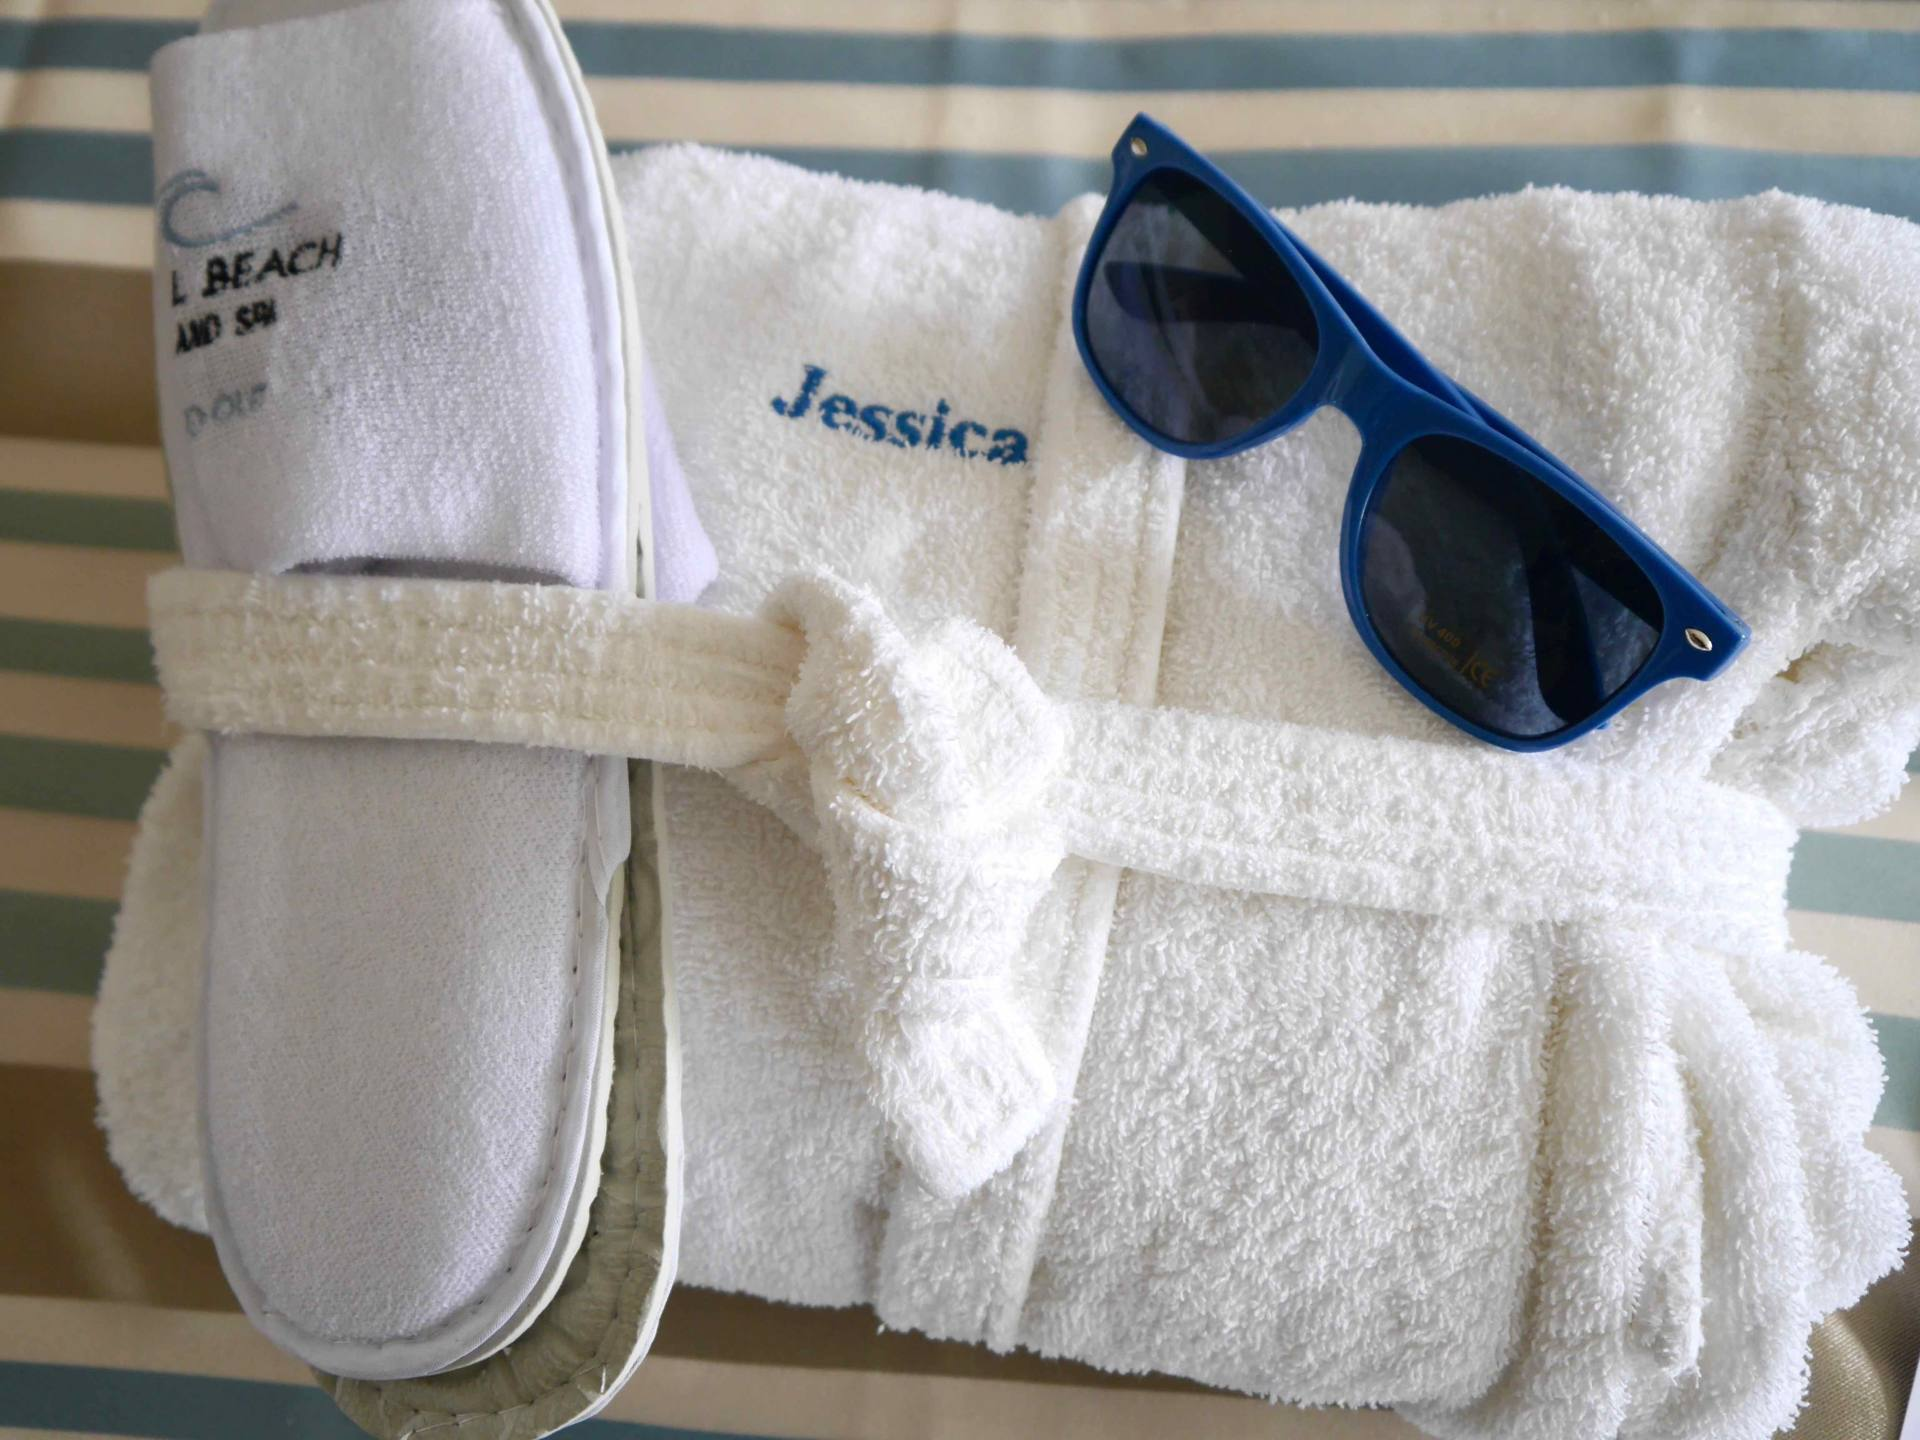 Fistral Beach Hotel and Spa Personalised Robe